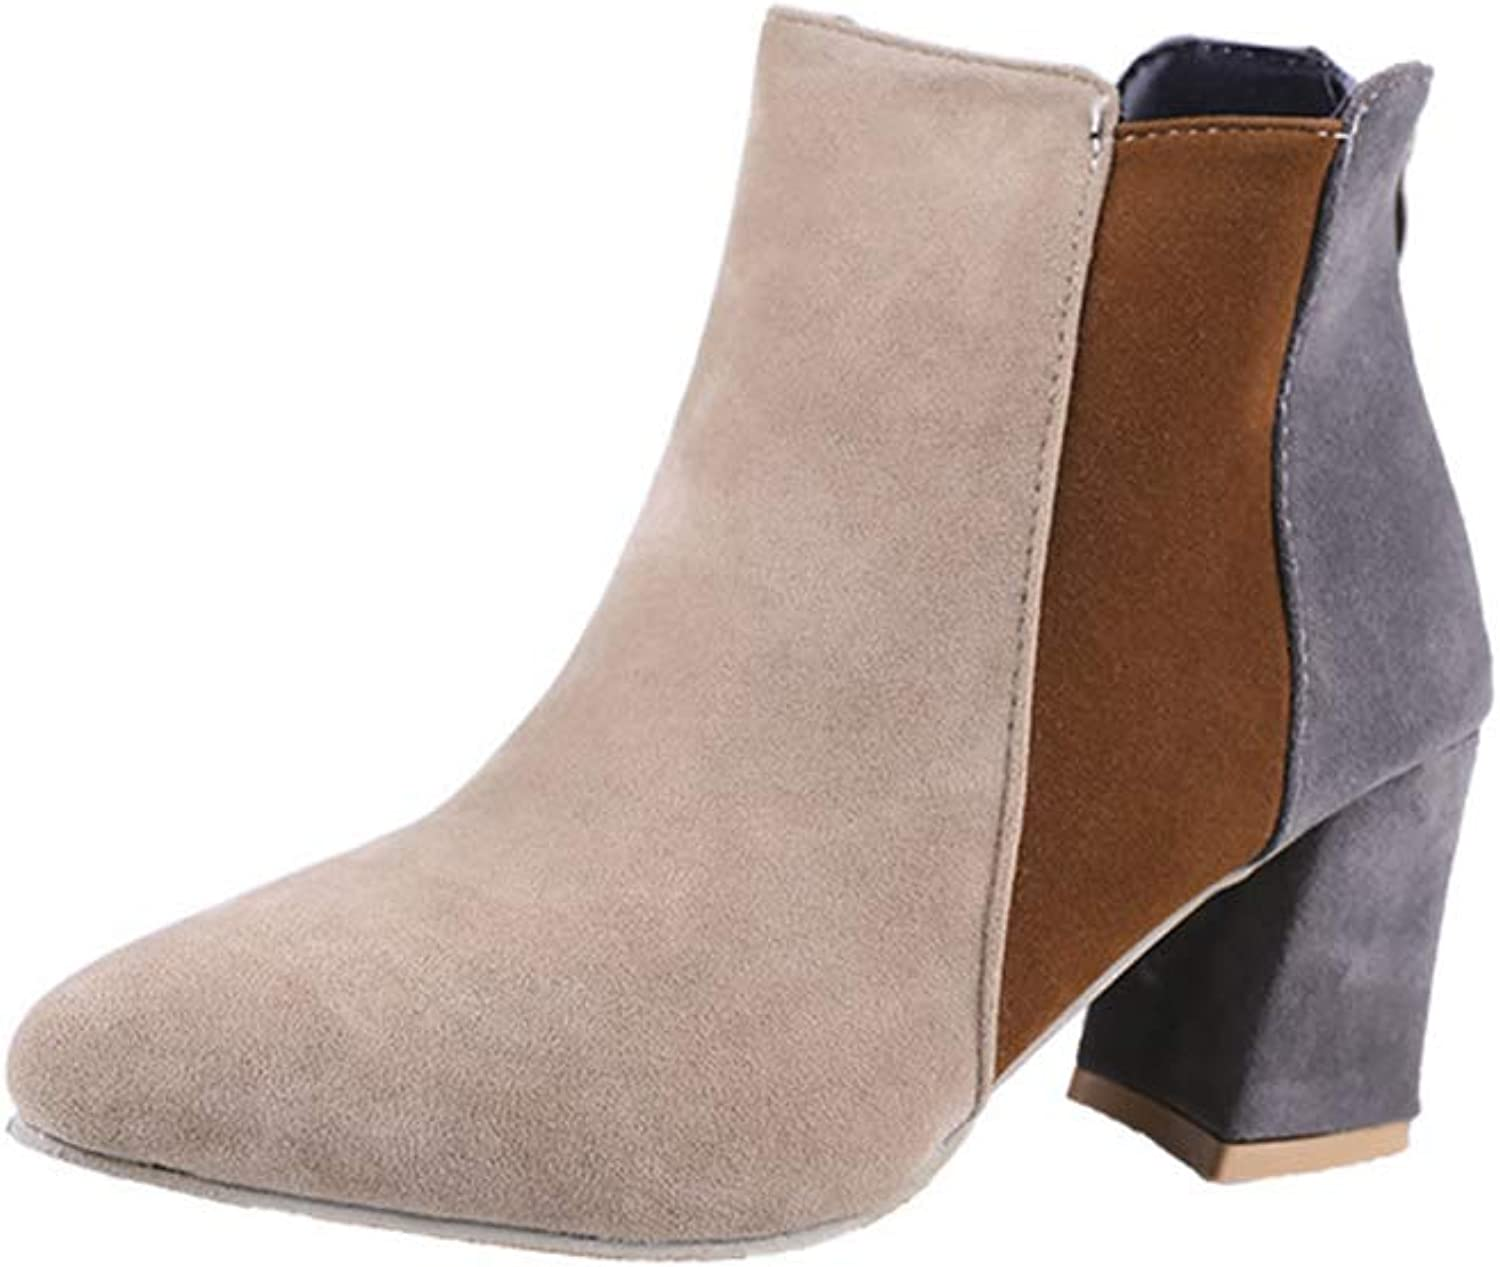 Mix-color Suede Ankle Boots for Women,Chunky Block Heel Booties, Fashion Back Zipper Martin Boots